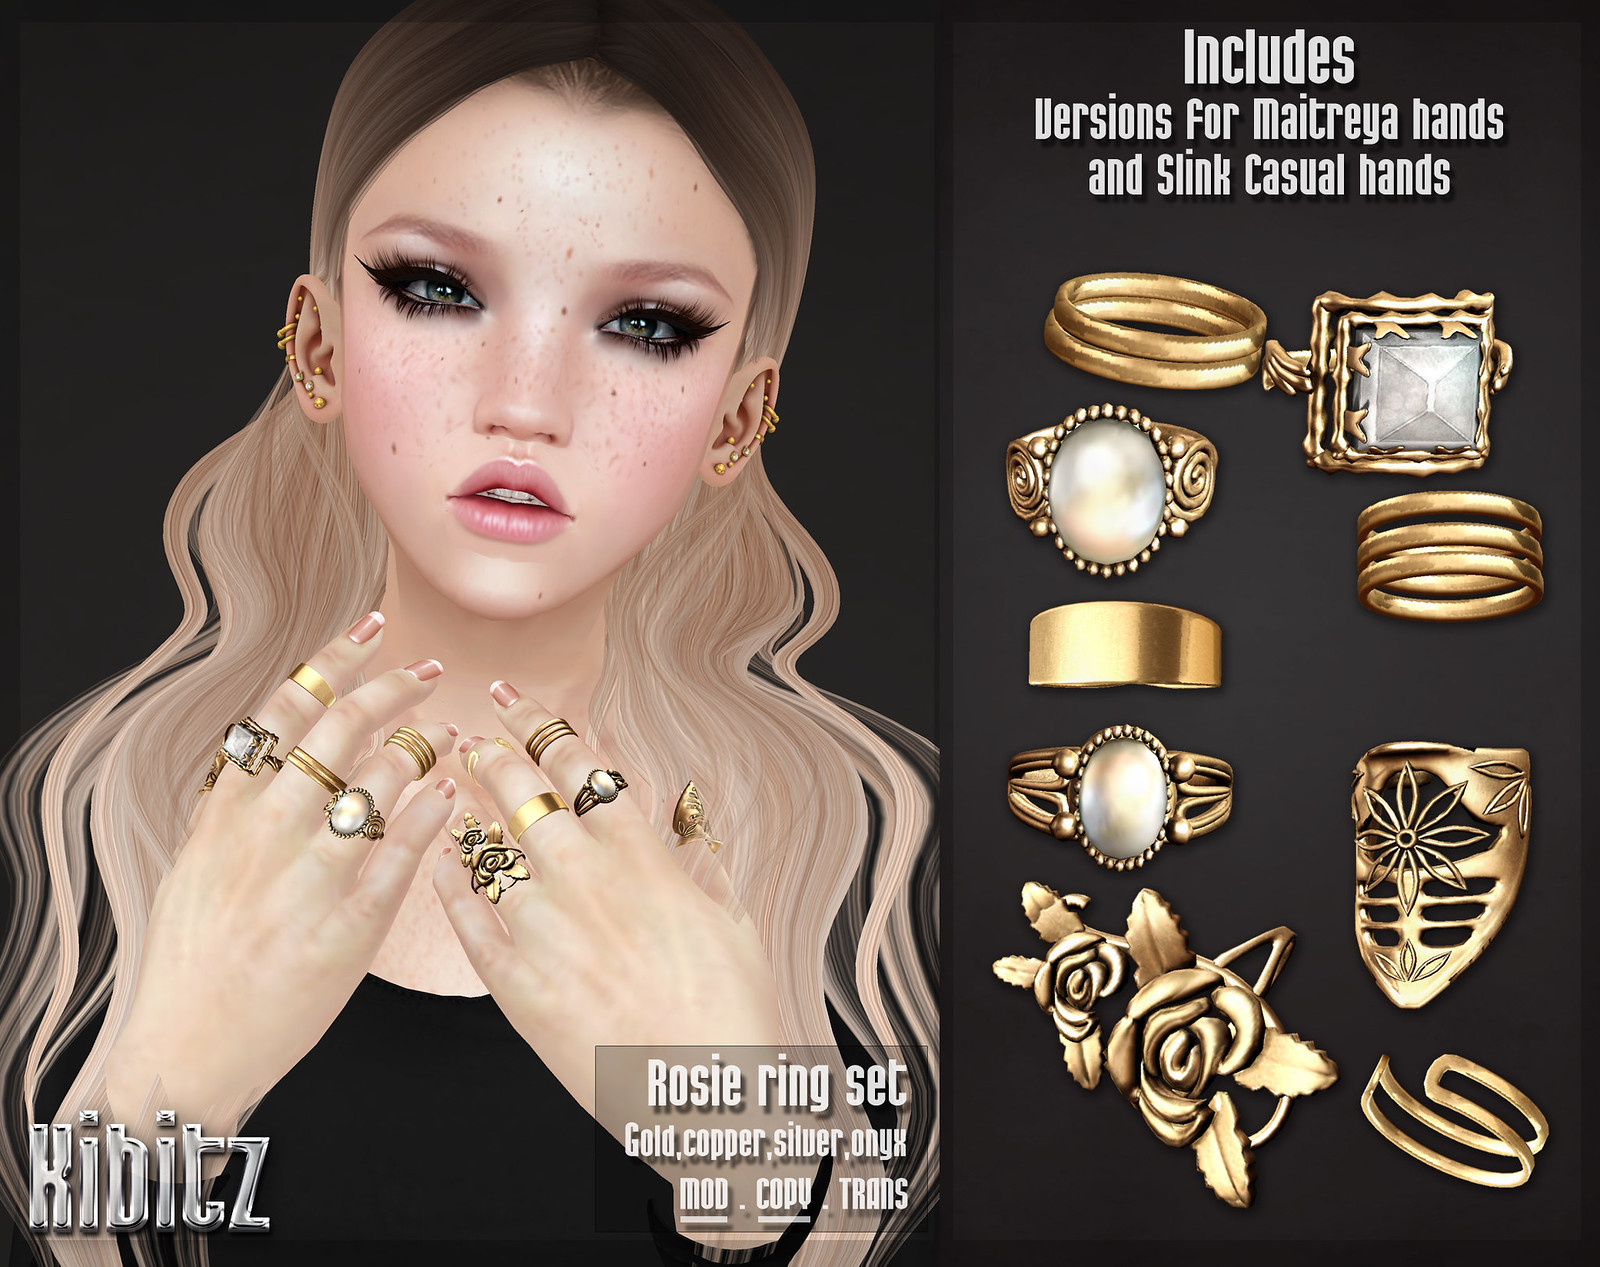 kibitz rosie ring set